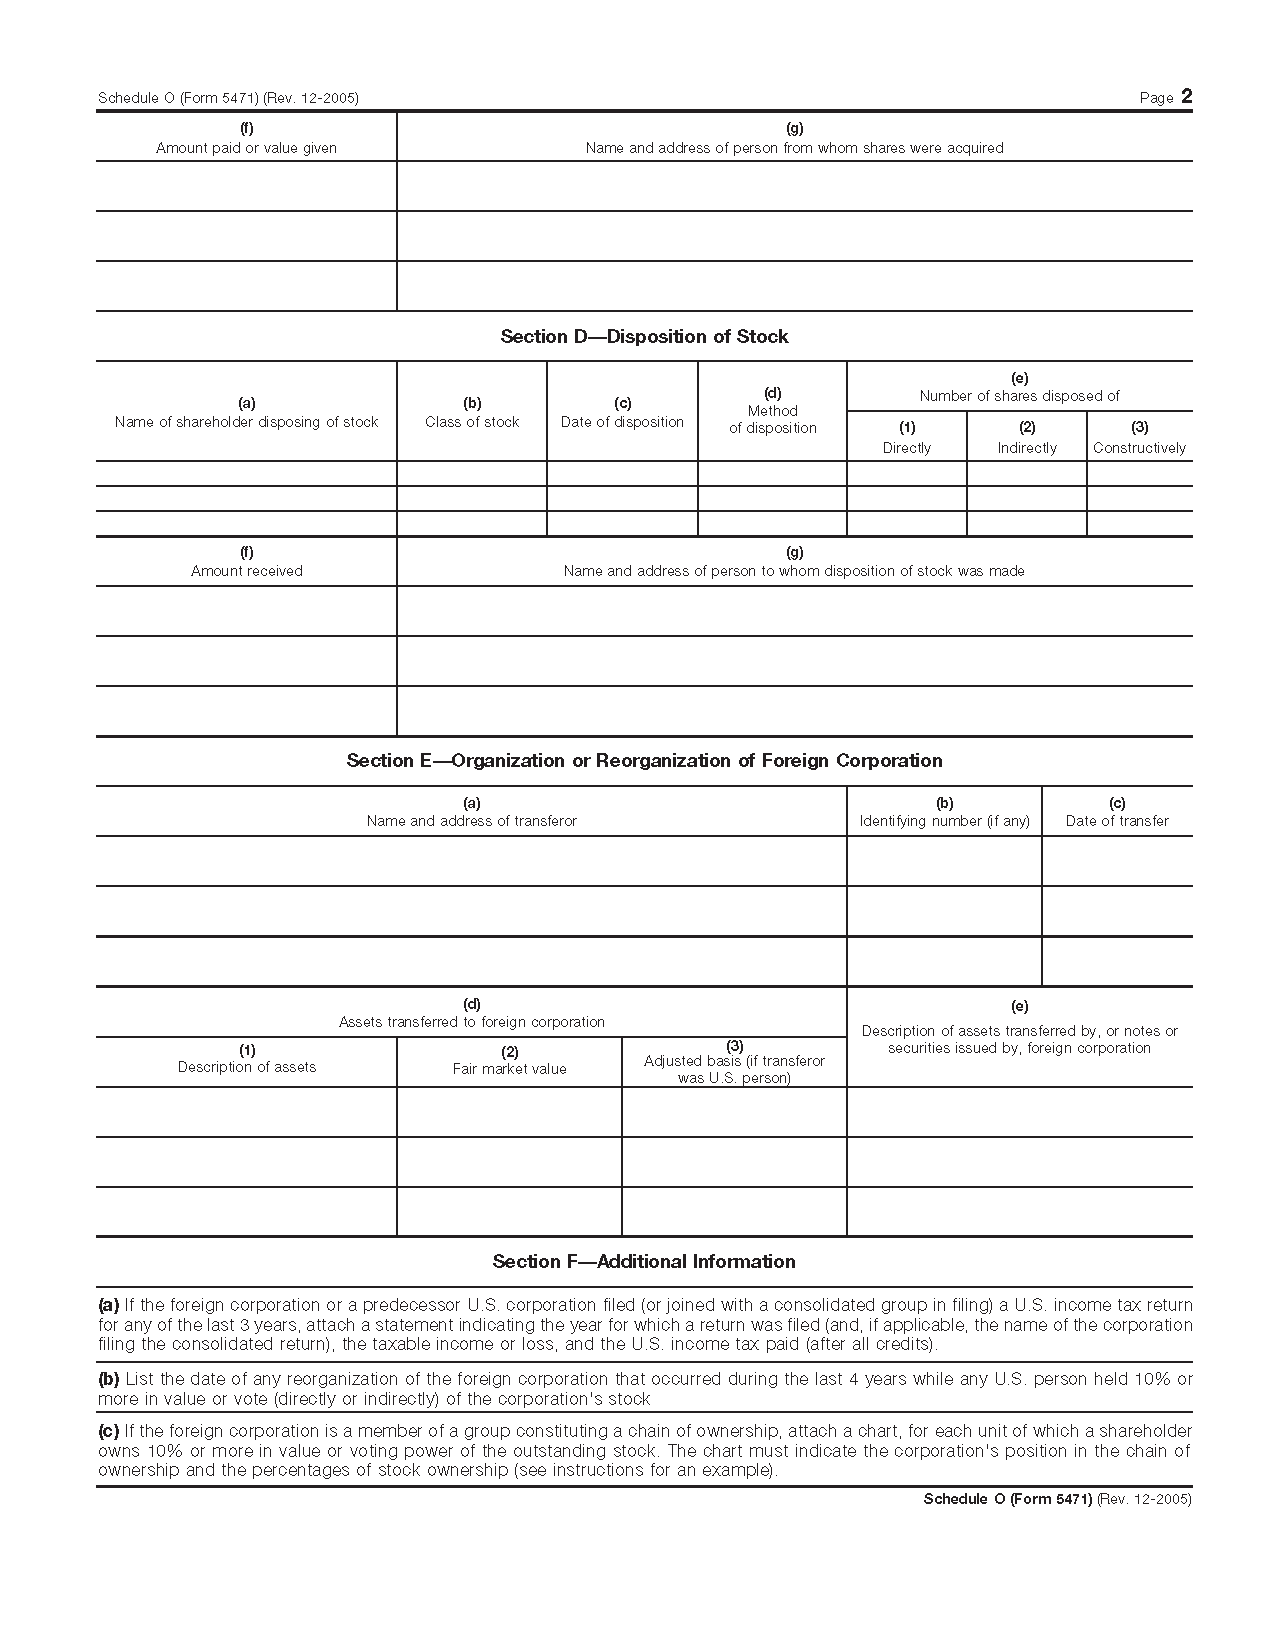 Form 5471 (Schedule O) Organization or Reorganization of Foreign ...